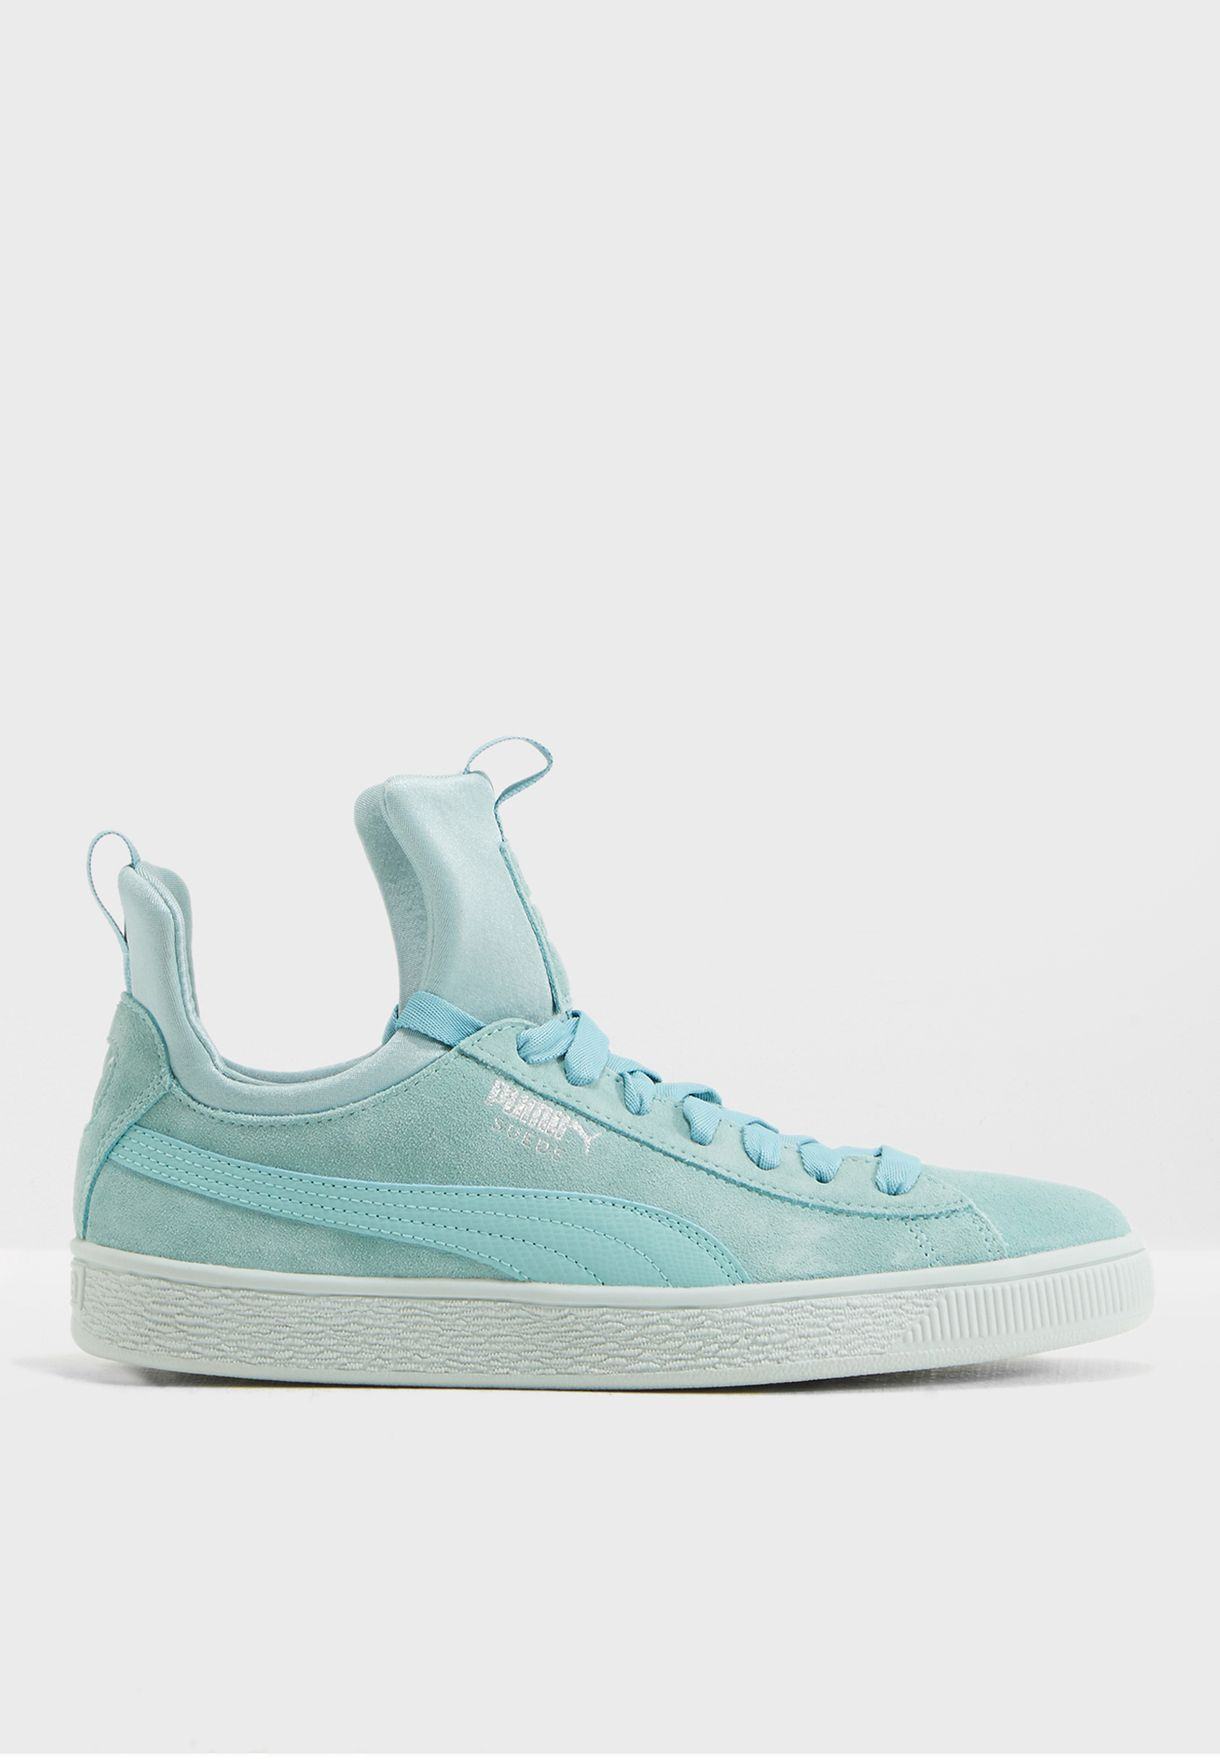 903f476d1068 Shop PUMA blue Suede Fierce 36601004 for Women in UAE - PU020SH51DAY